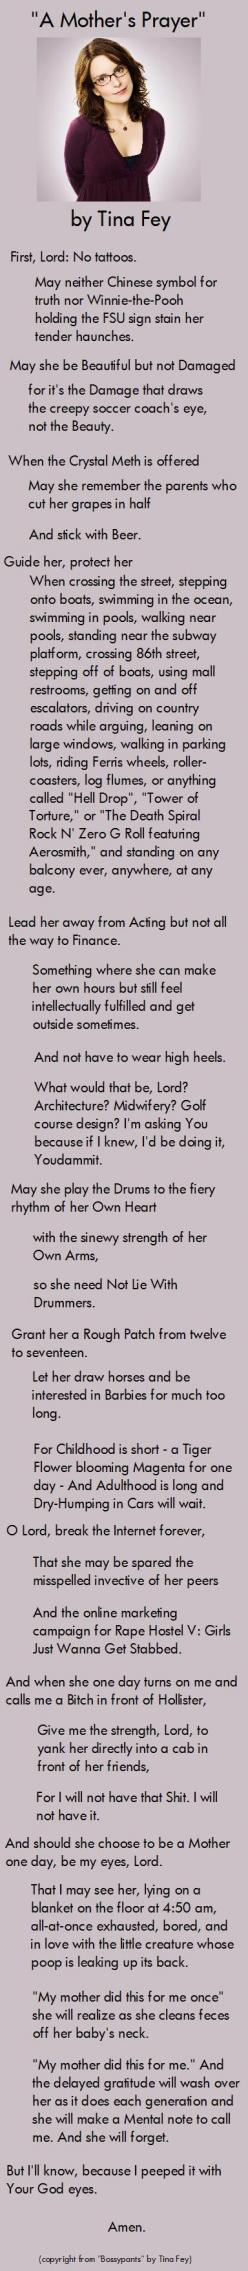 one of my favorite prayers, Lord help me.: Tinafey, Girl, Quote, A Mothers Prayer, Daughter, Tina Fey S, So Funny